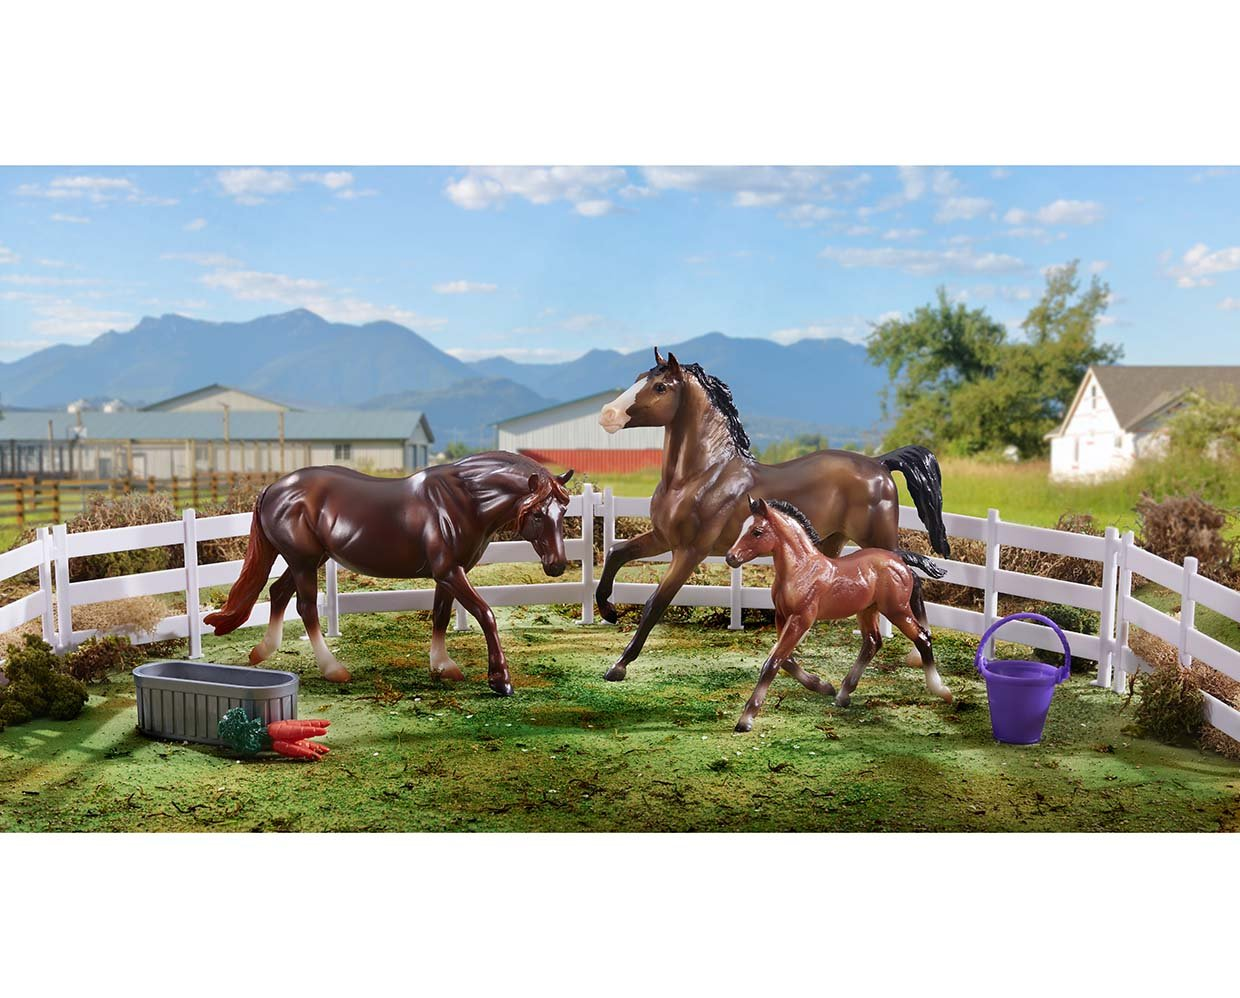 Breyer Horse Classics Collection #62200 Pony Power Classic 3 Horse Set - New Factory Sealed